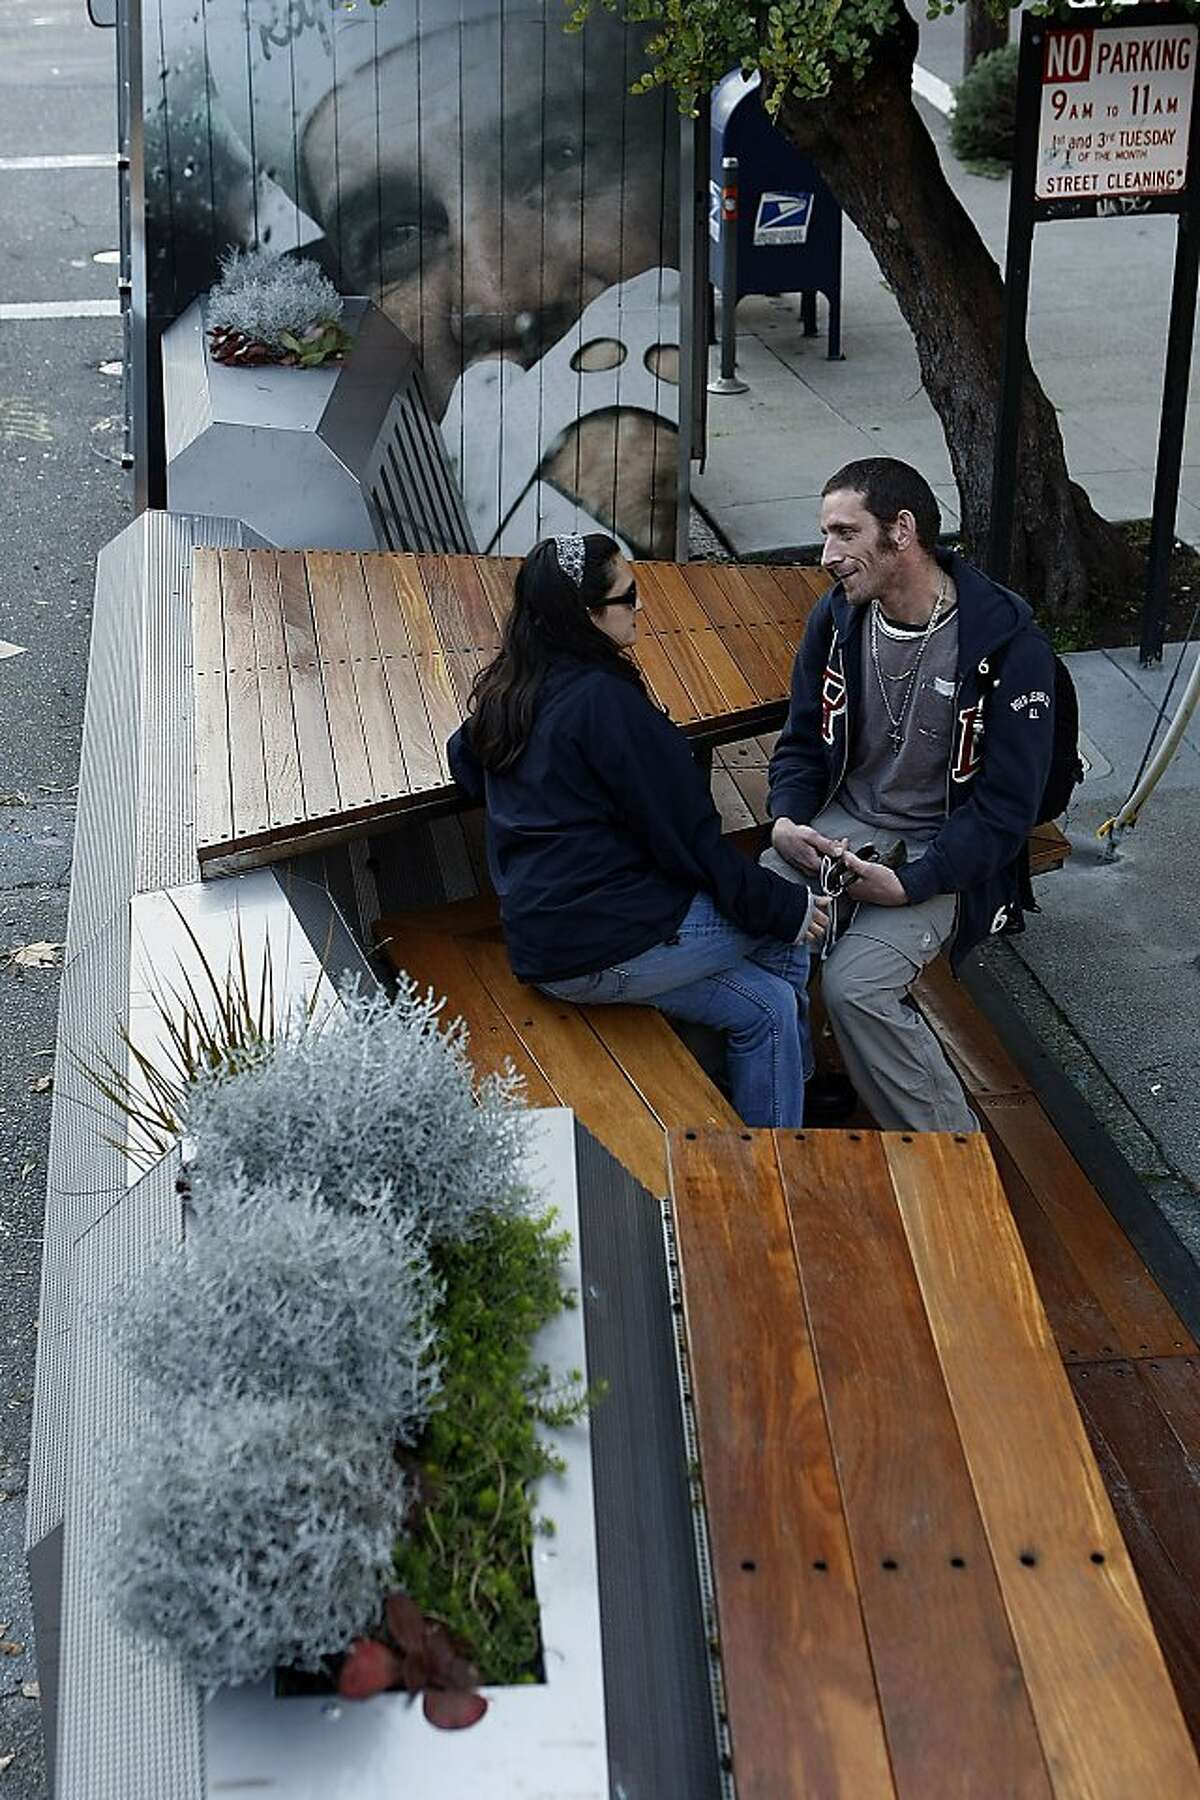 Isabella Baker talks to Jonathon Rocket, both from New York, at the new parklet outside Rapha Cycle Club on January 3, 2013 in San Francisco, Calif. The parklet, which is at the intersection of Filbert Street and Filmore Street, is built from a bicycle truck that was split and had seats added to the middle for the public to utilize.